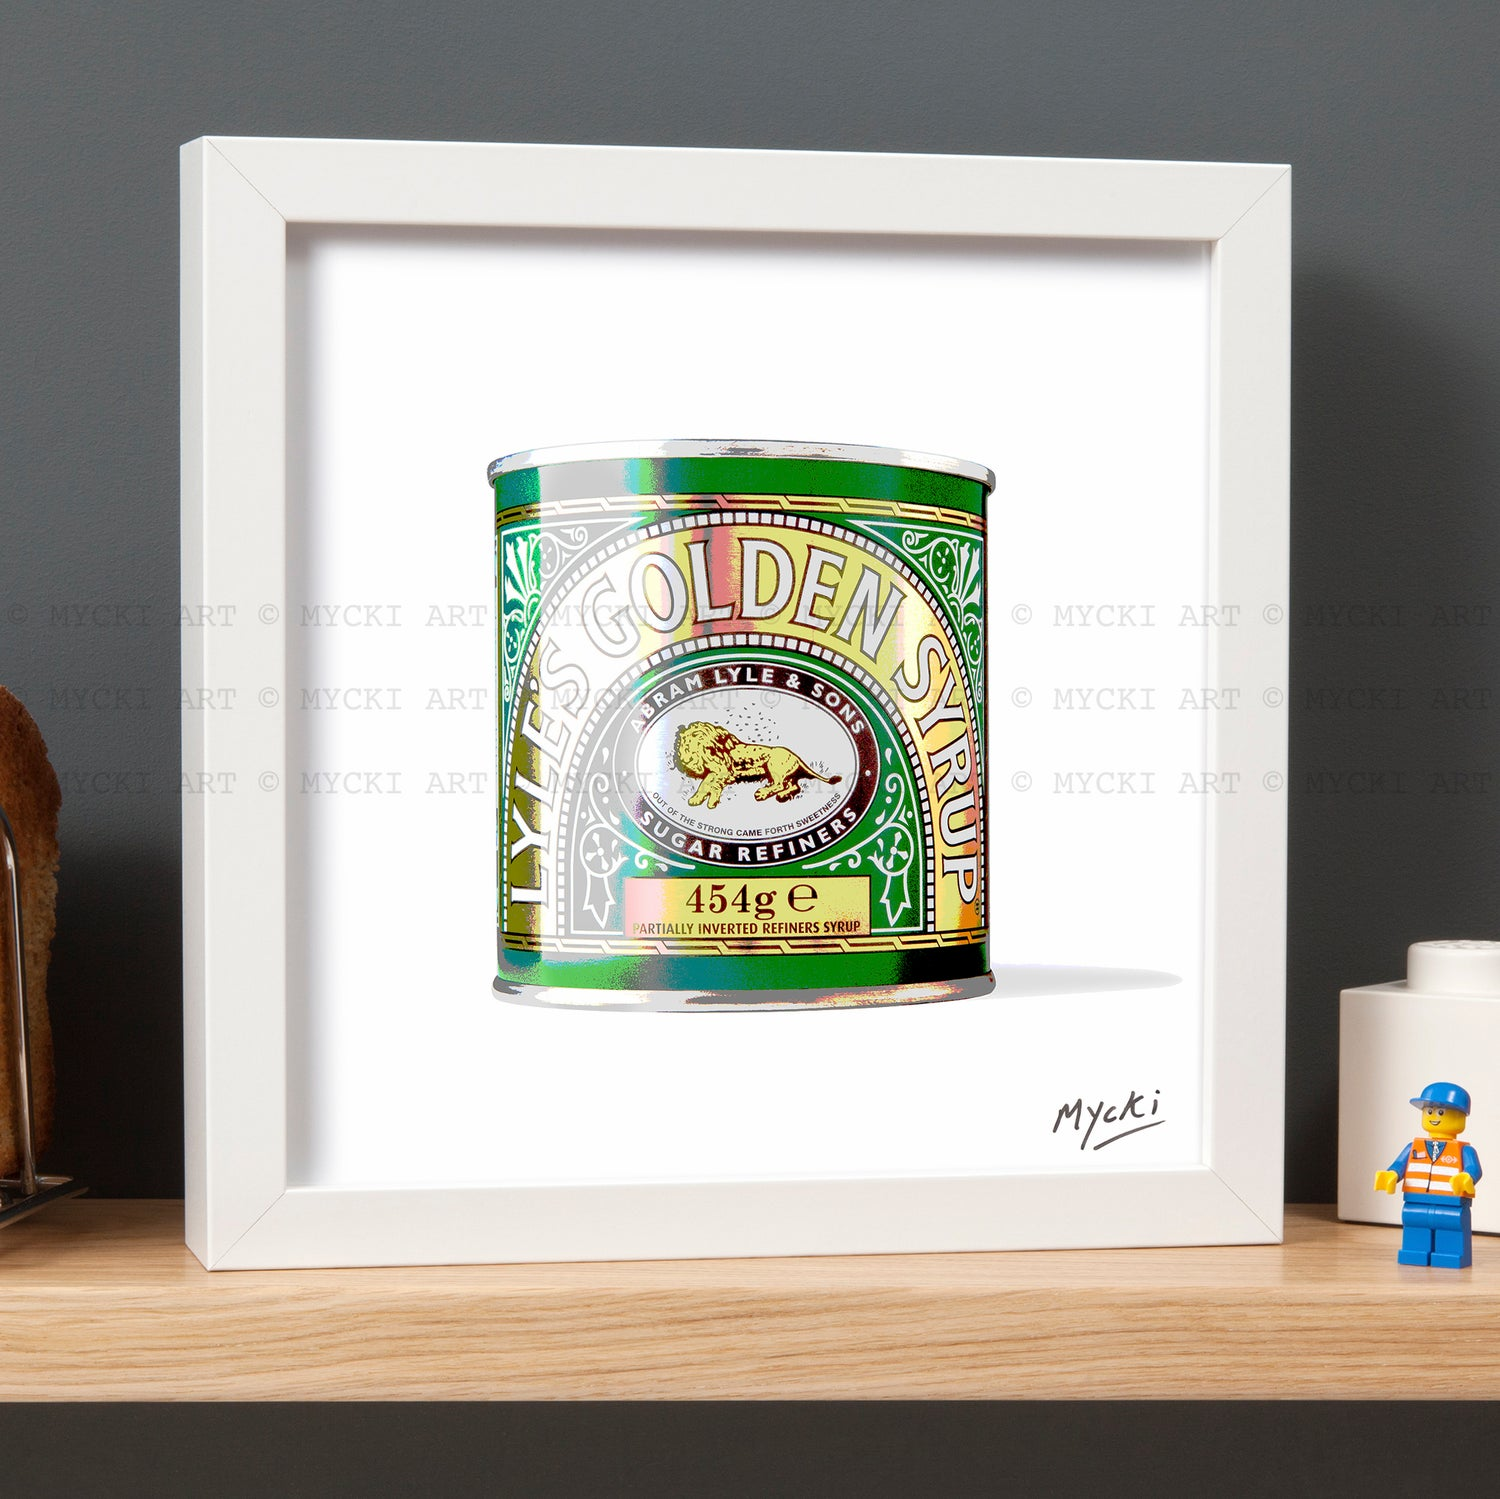 Image of Golden Syrup